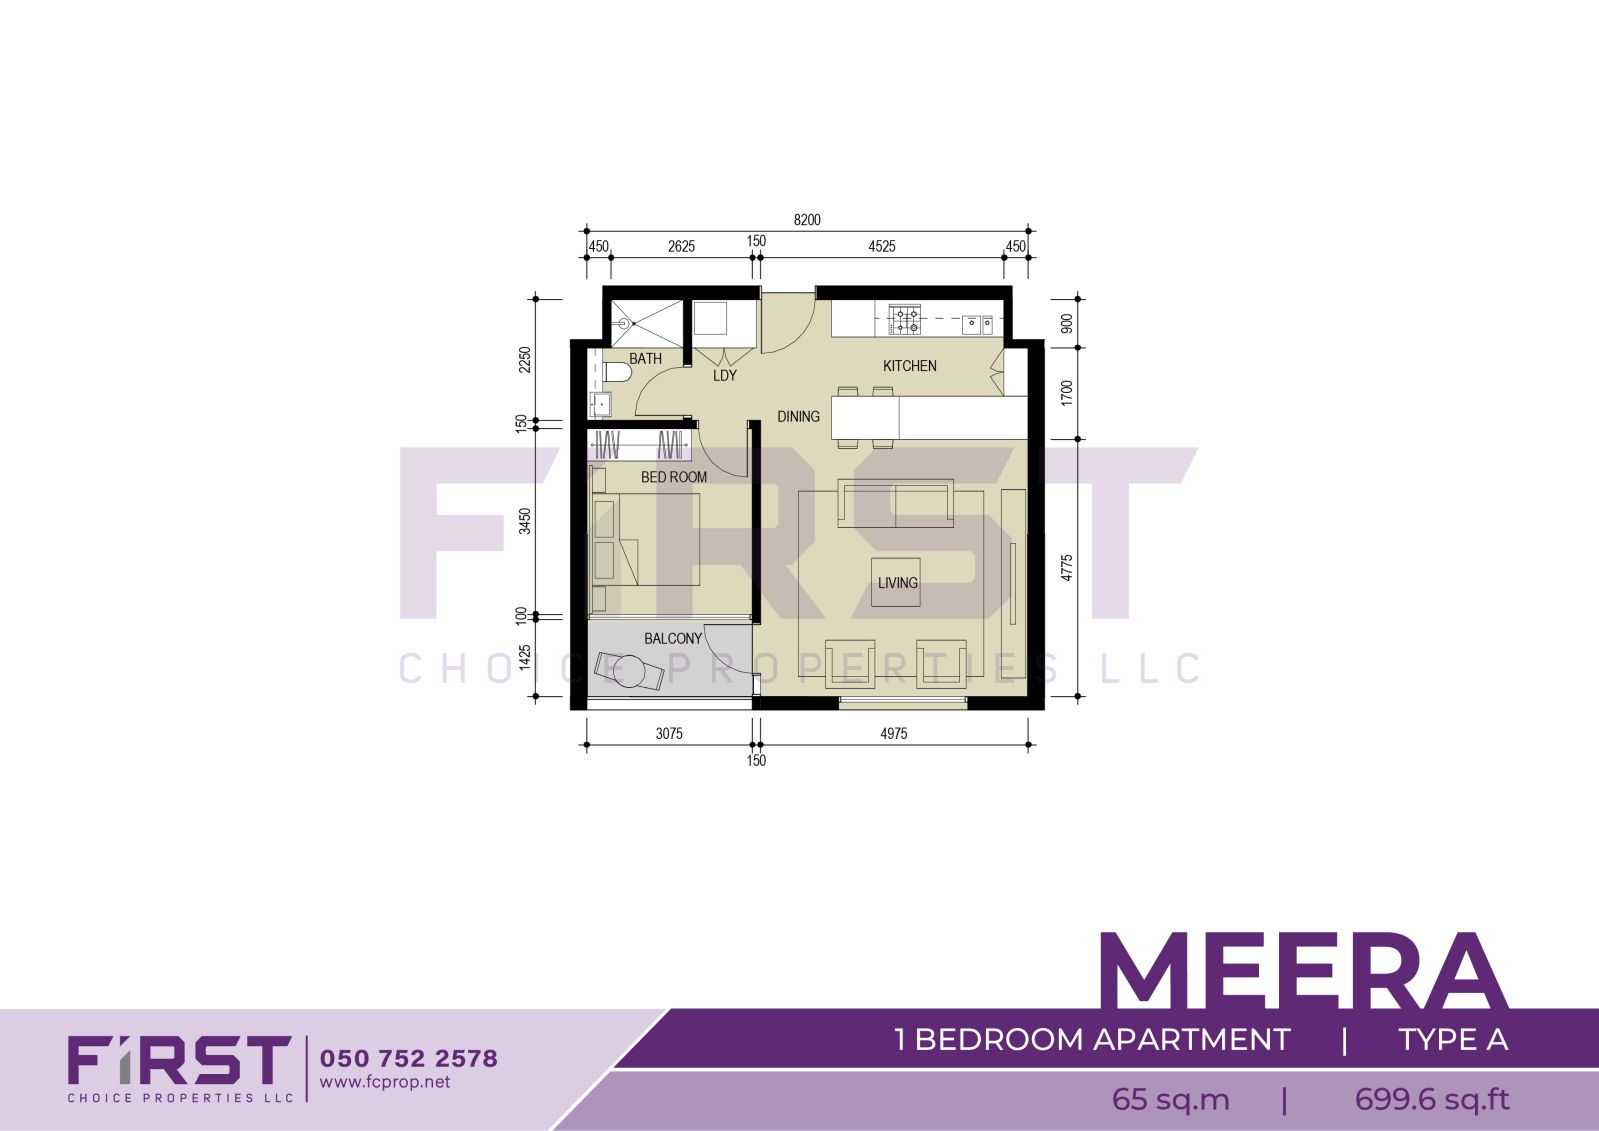 Floor Plan of 1 Bedroom Apartment Type A in Meera Shams Al Reem Island Abu Dhabi UAE 65 sq.m 699.6 sq.ft.jpg